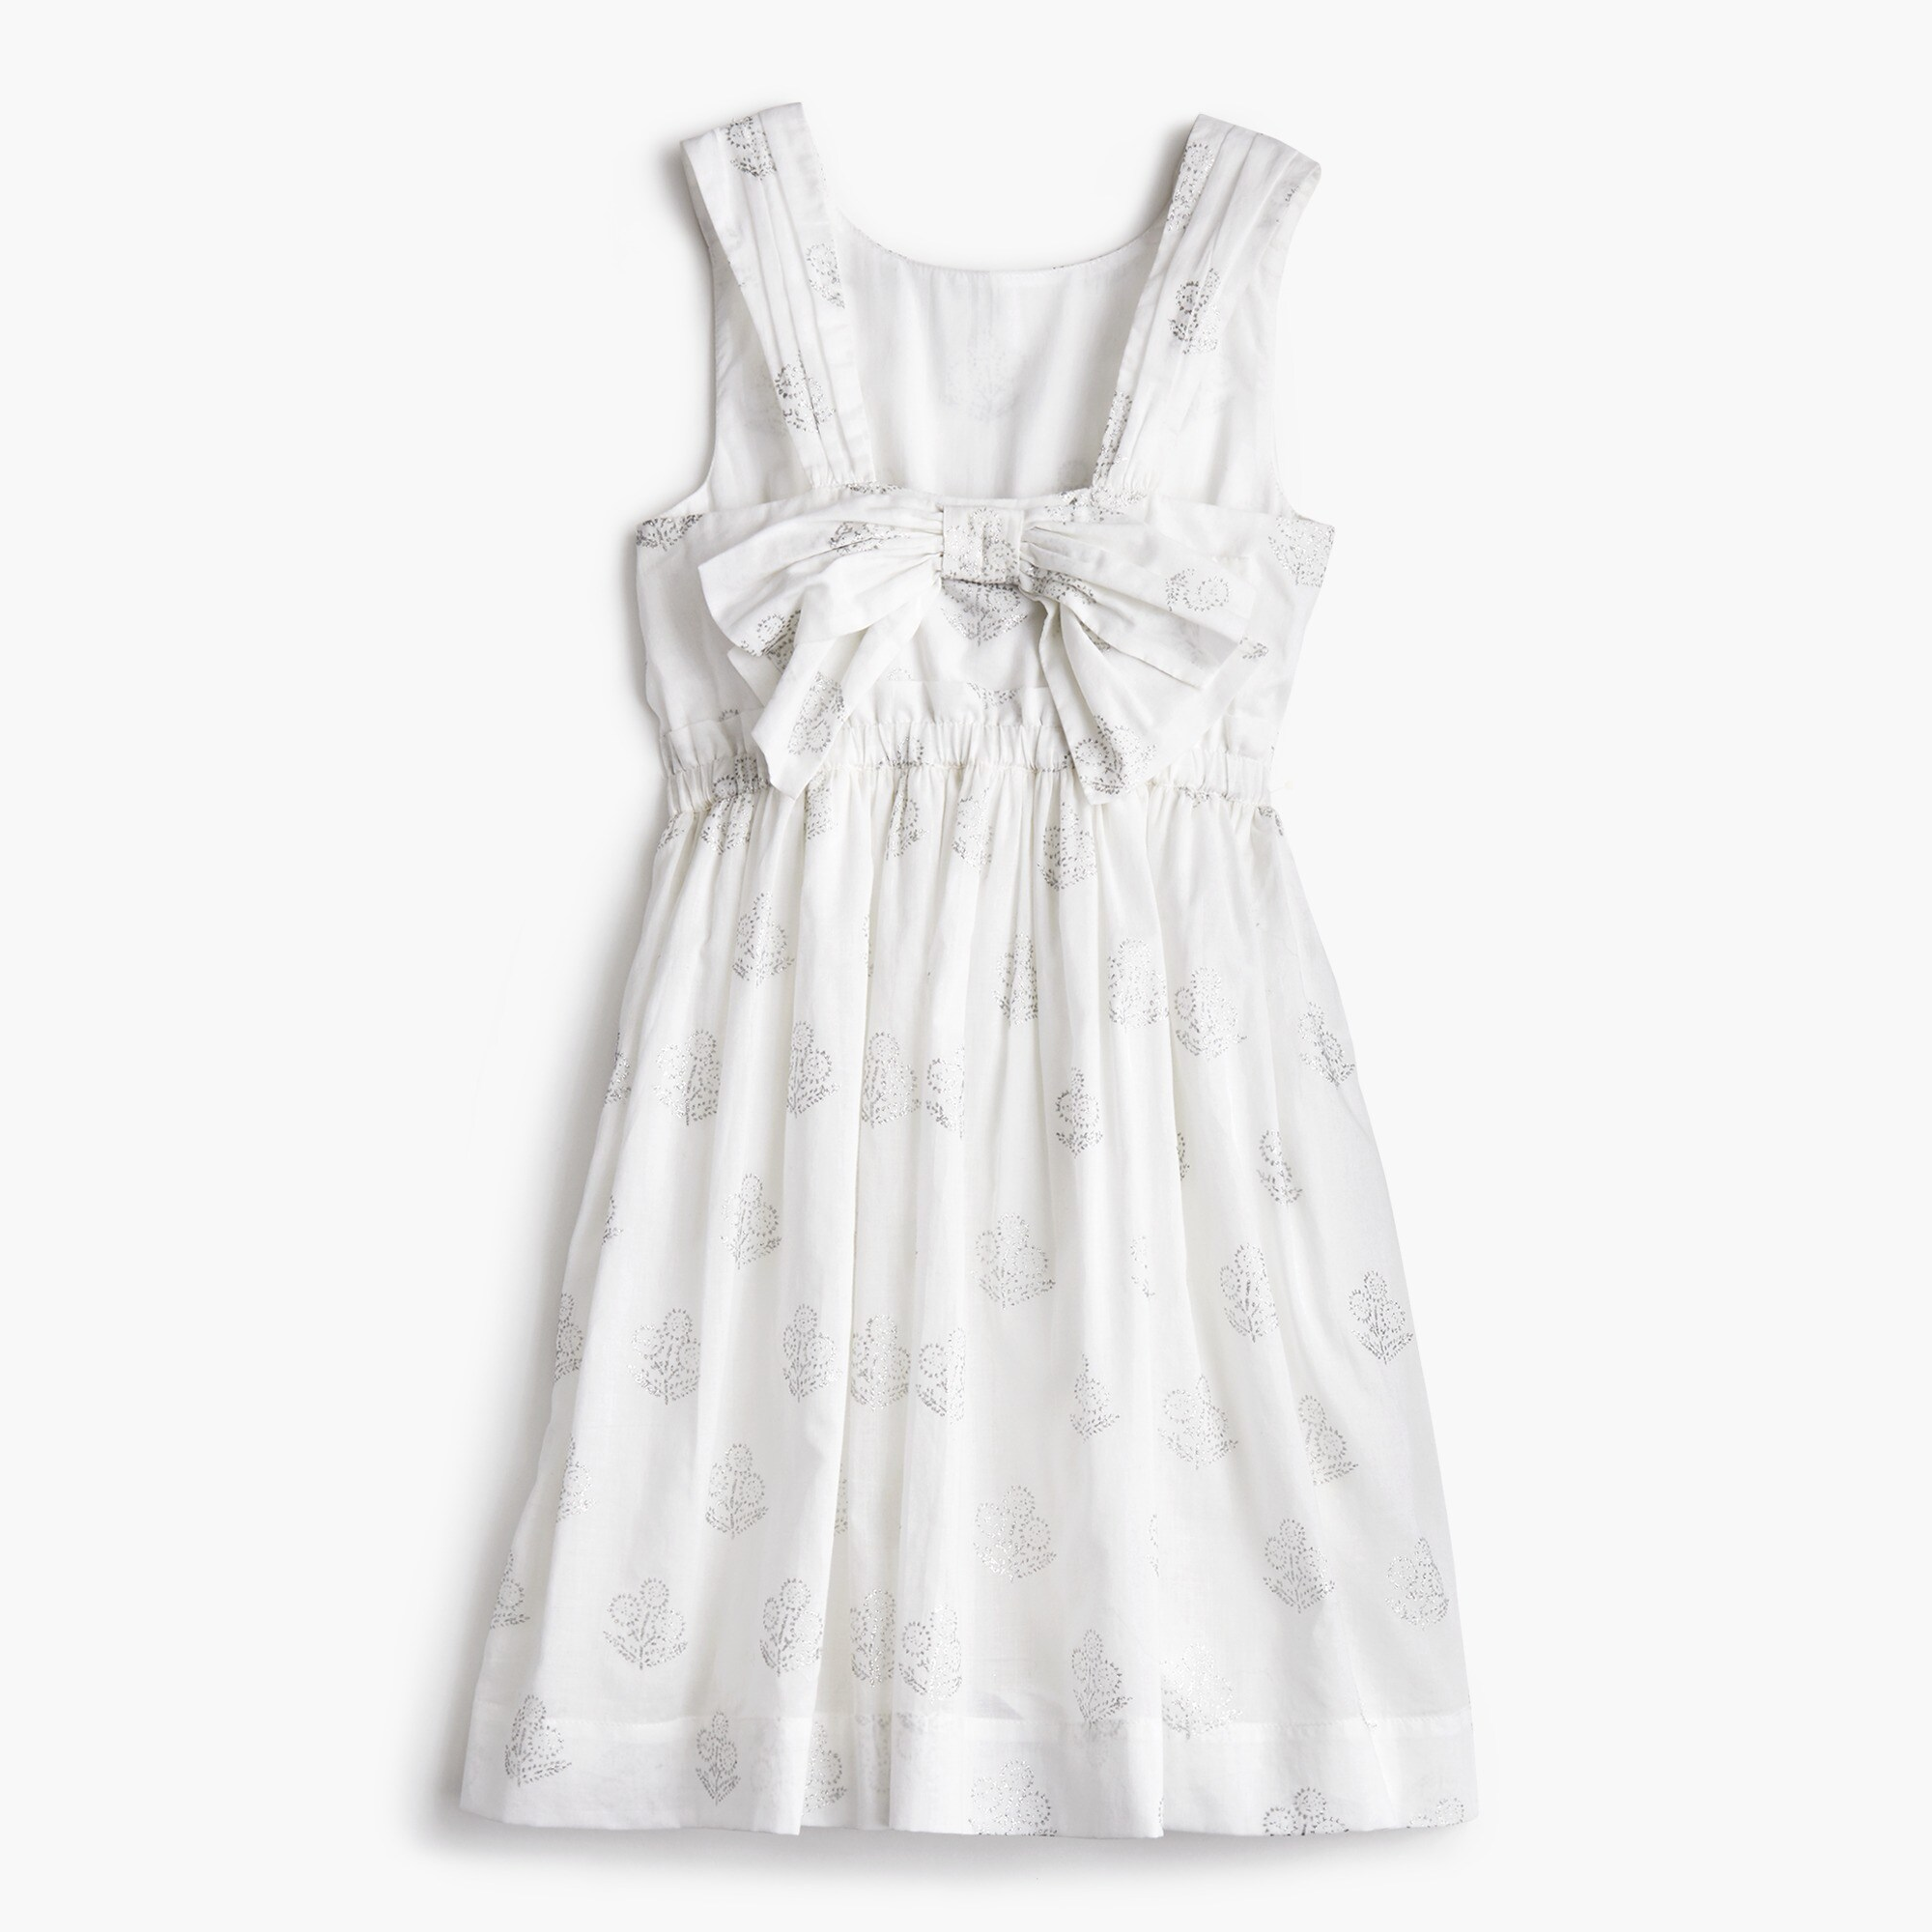 Image 2 for Girls' silver floral bow-back dress